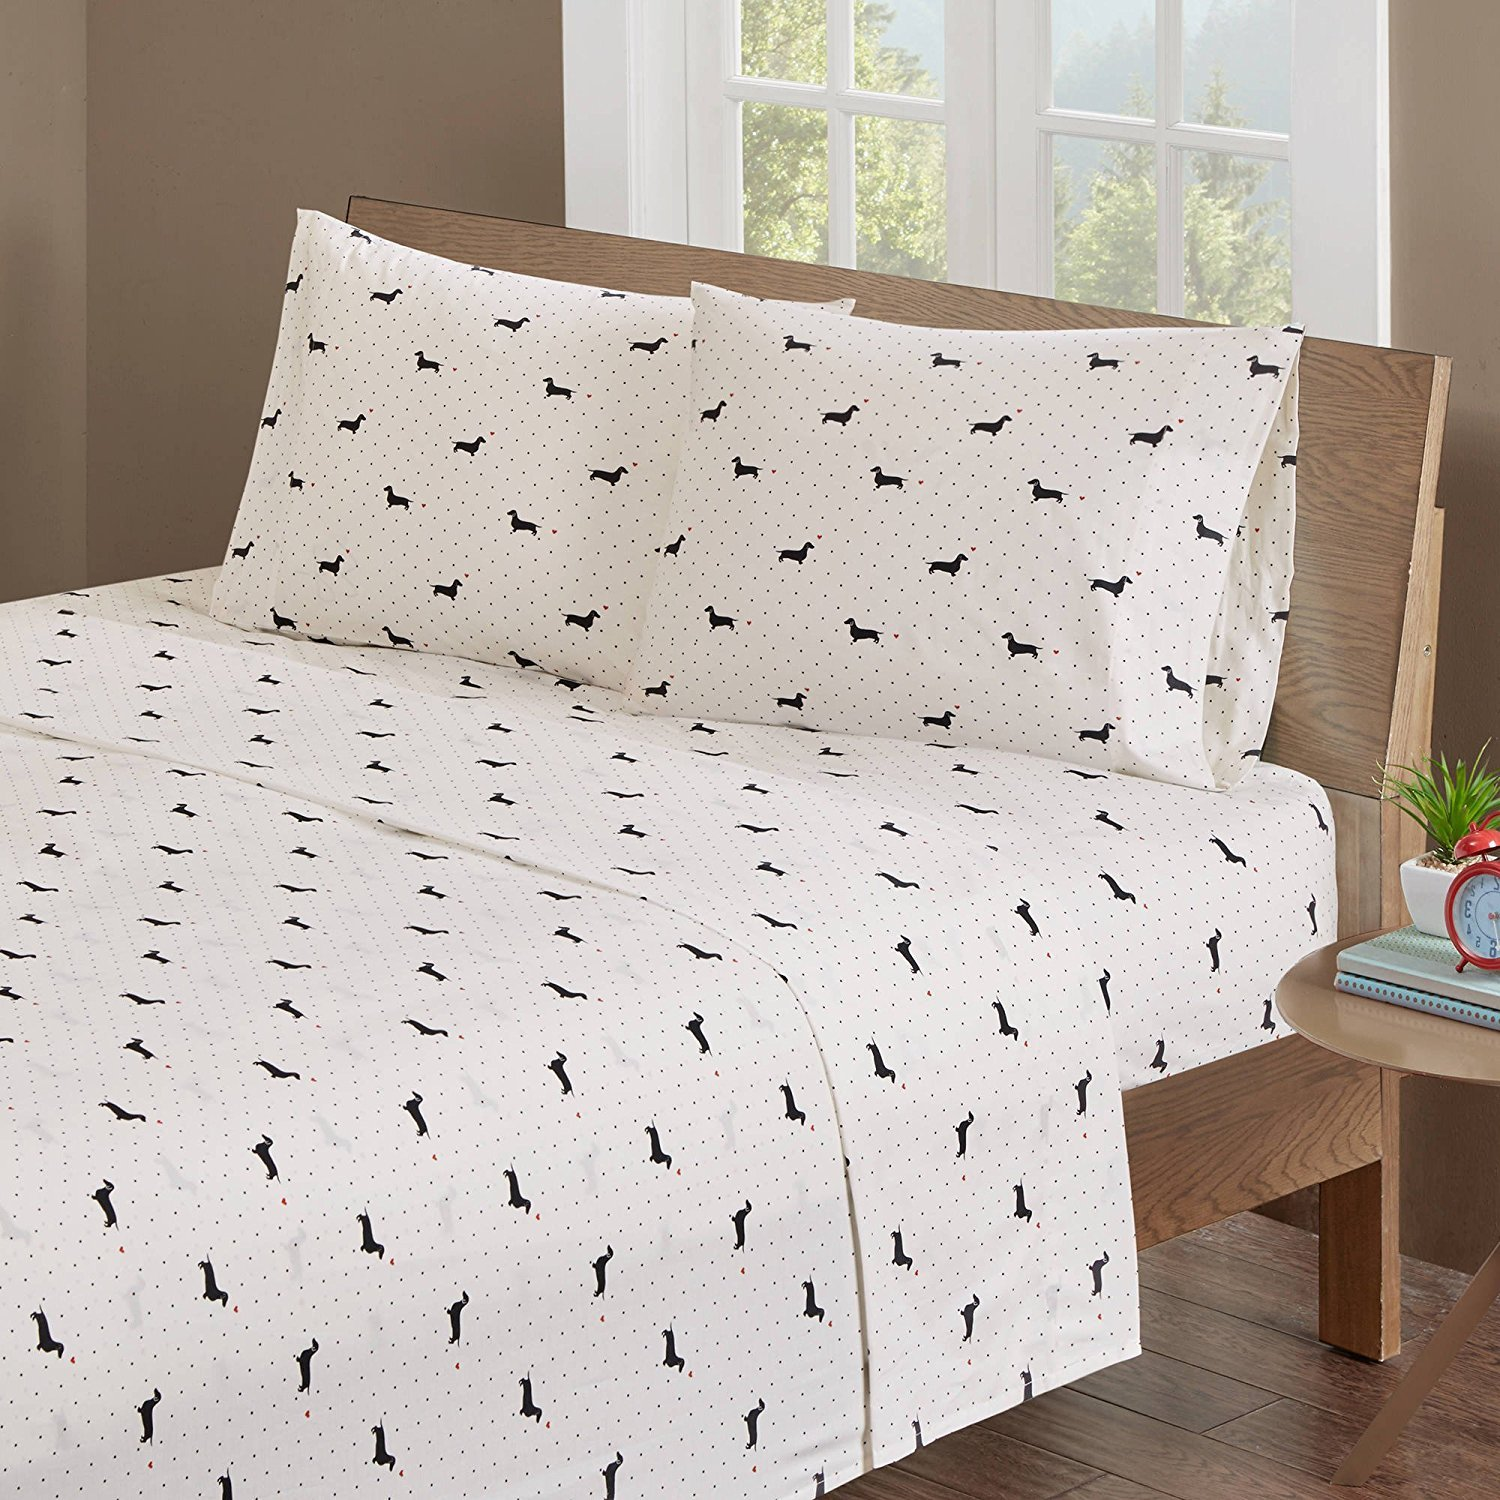 MISC 4pc Black Ivory Cute Doggy Sheets Full Set, Classic Polka Dots, Deep Pocket, Cotton, Red Hearts, Lovely Dachshund Dog, Pet Animal, Features Fully Elasticized Fitted